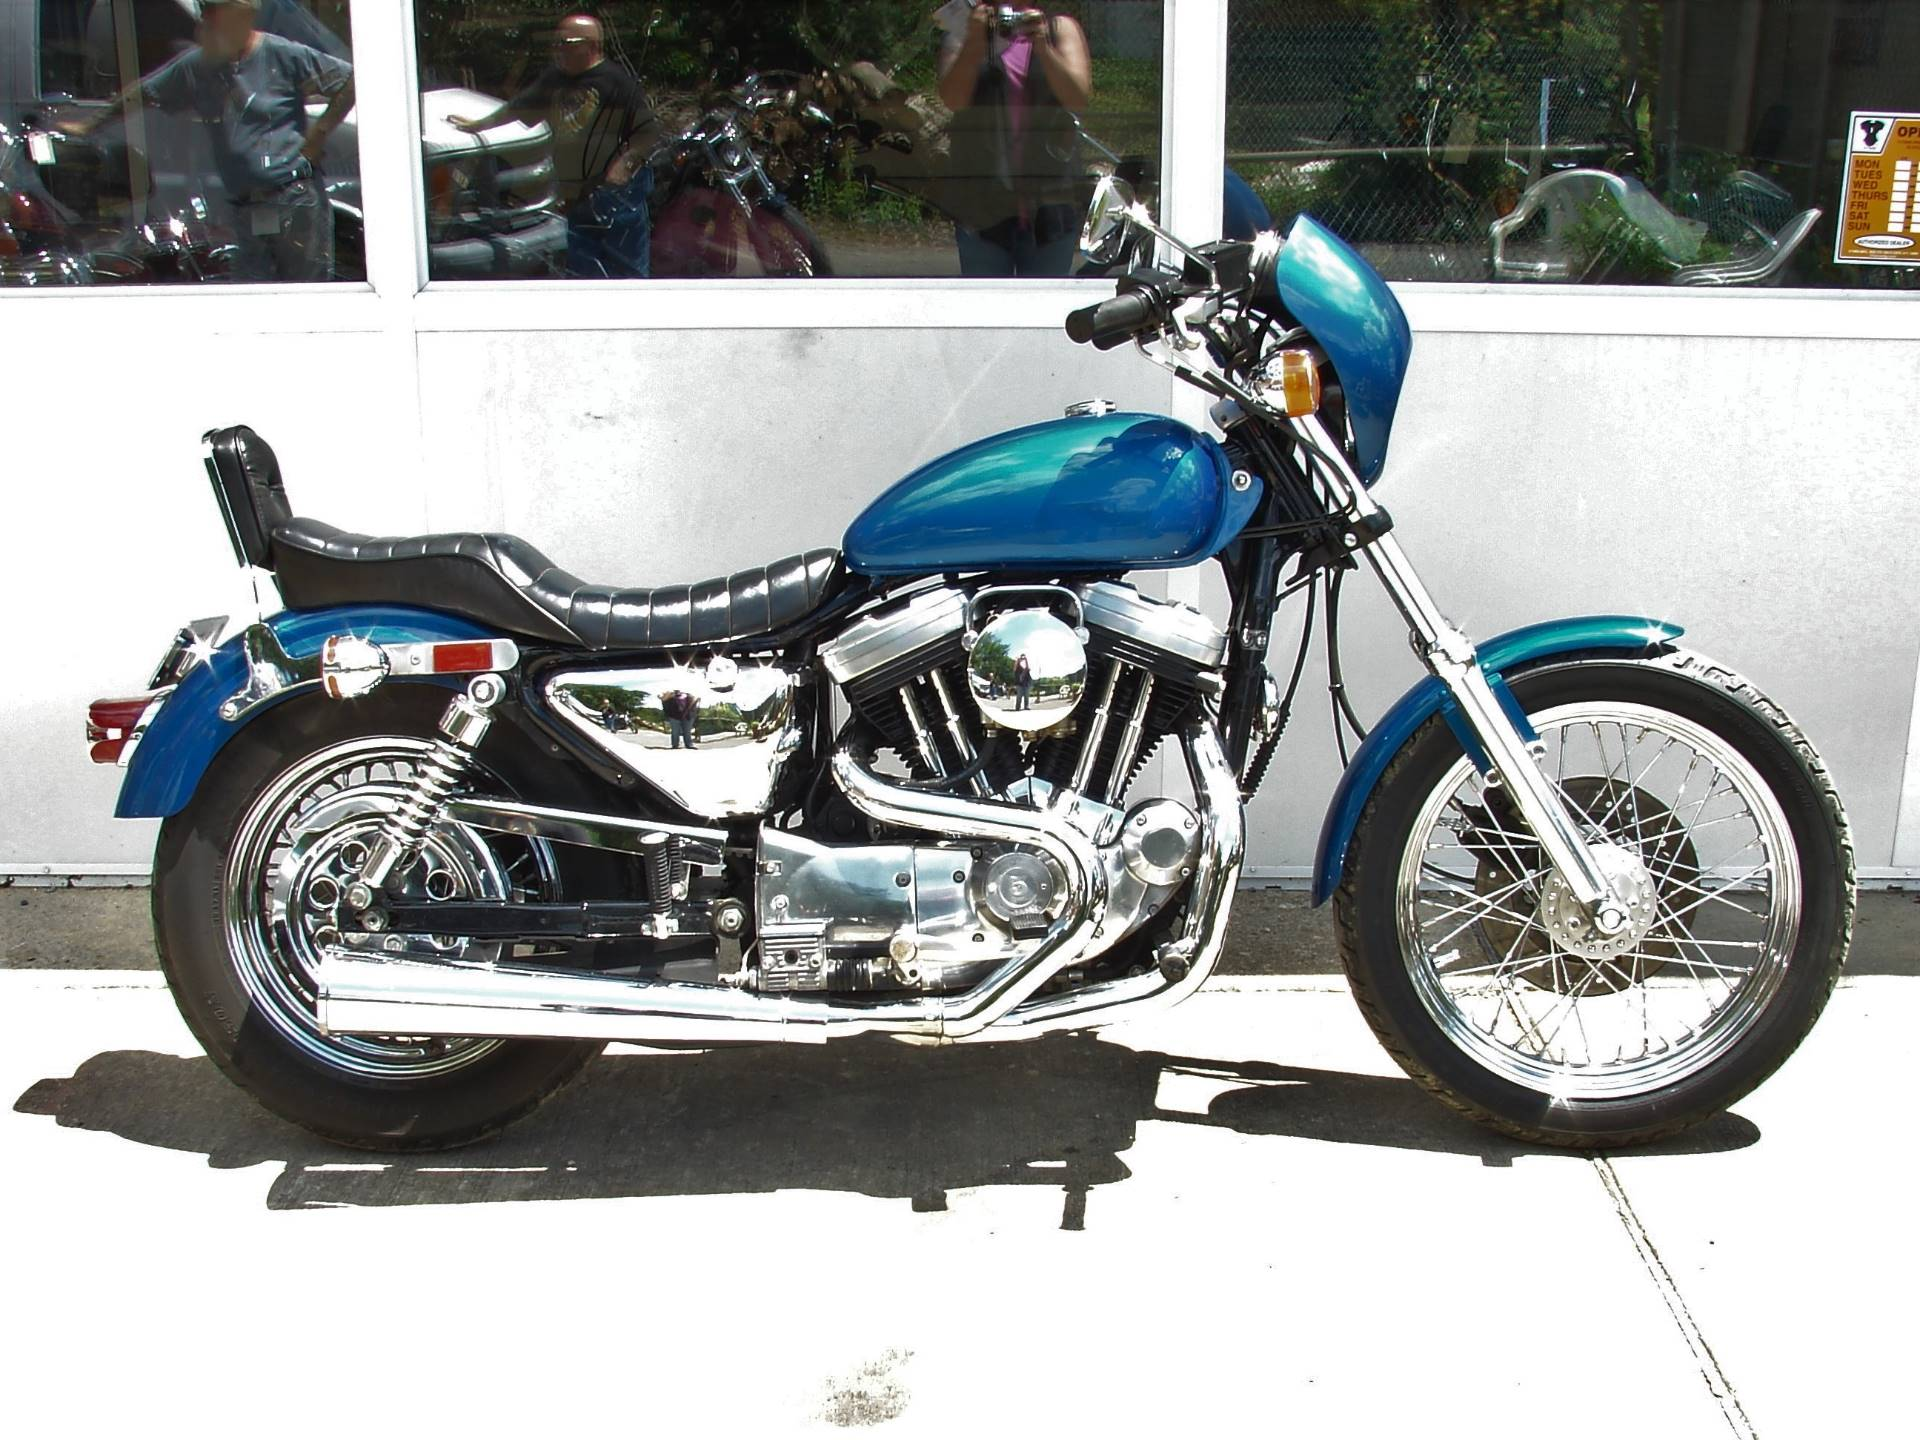 1993 Harley-Davidson 1200cc Sportster (Conversion) in Williamstown, New Jersey - Photo 4